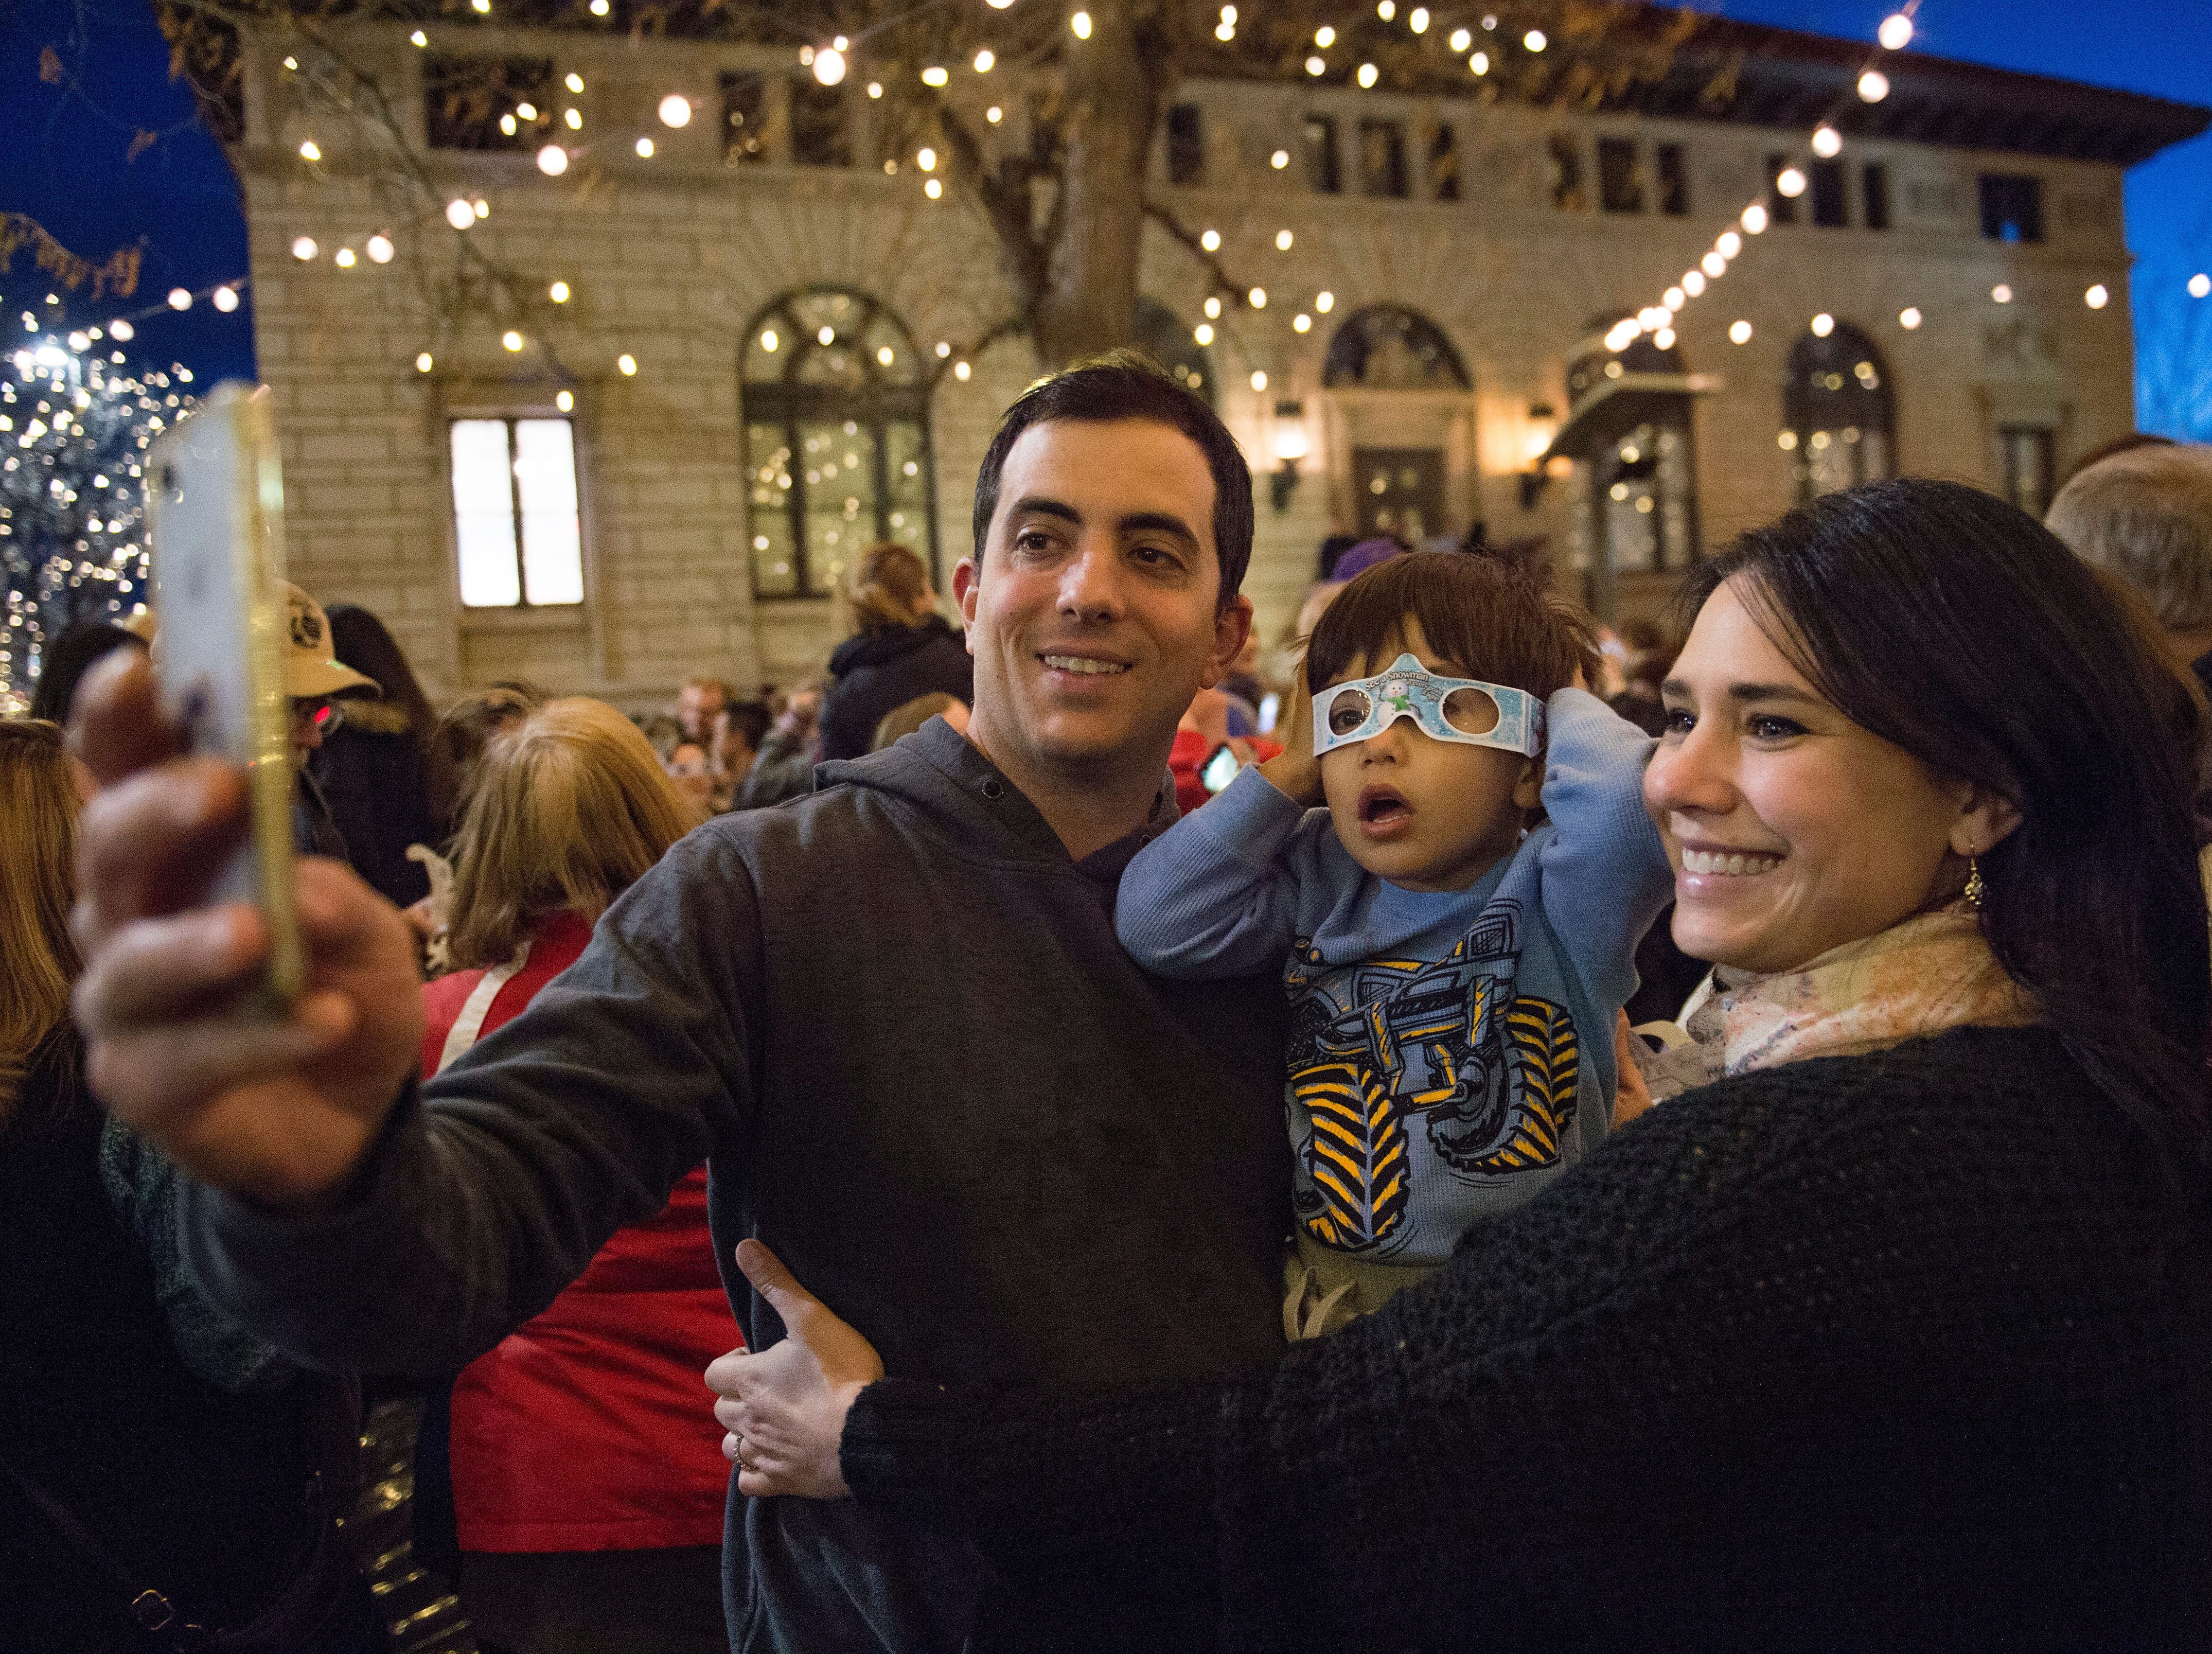 Frankie and Jennifer Basile take a photo with their son Taylor under the holiday lights in Old Town on Friday, November 2, 2018. The lights will illuminate Old Town until Feb. 14.